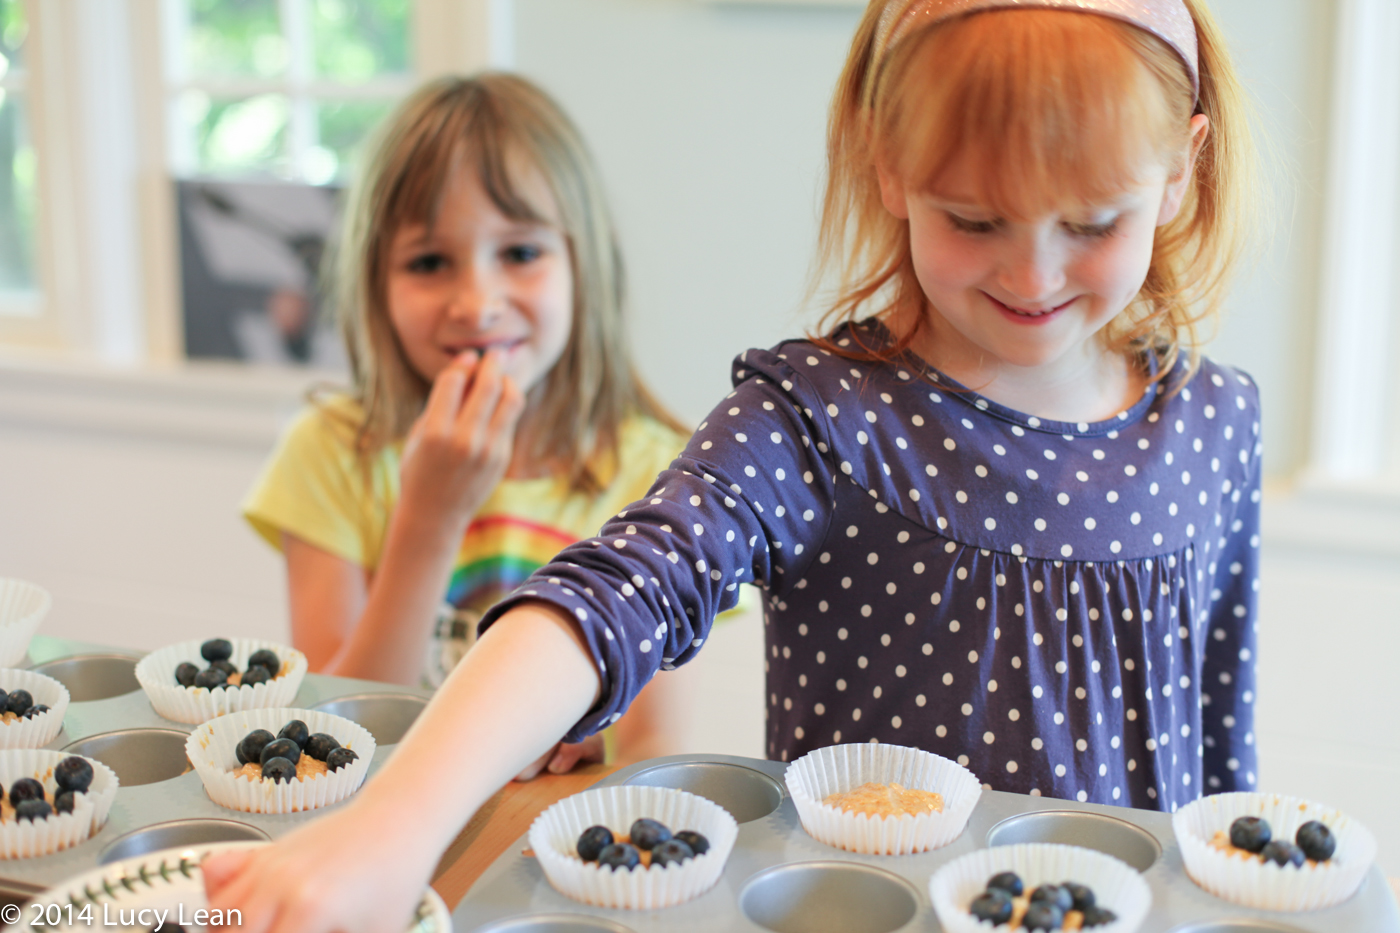 Elsie tops muffin batter with blueberries